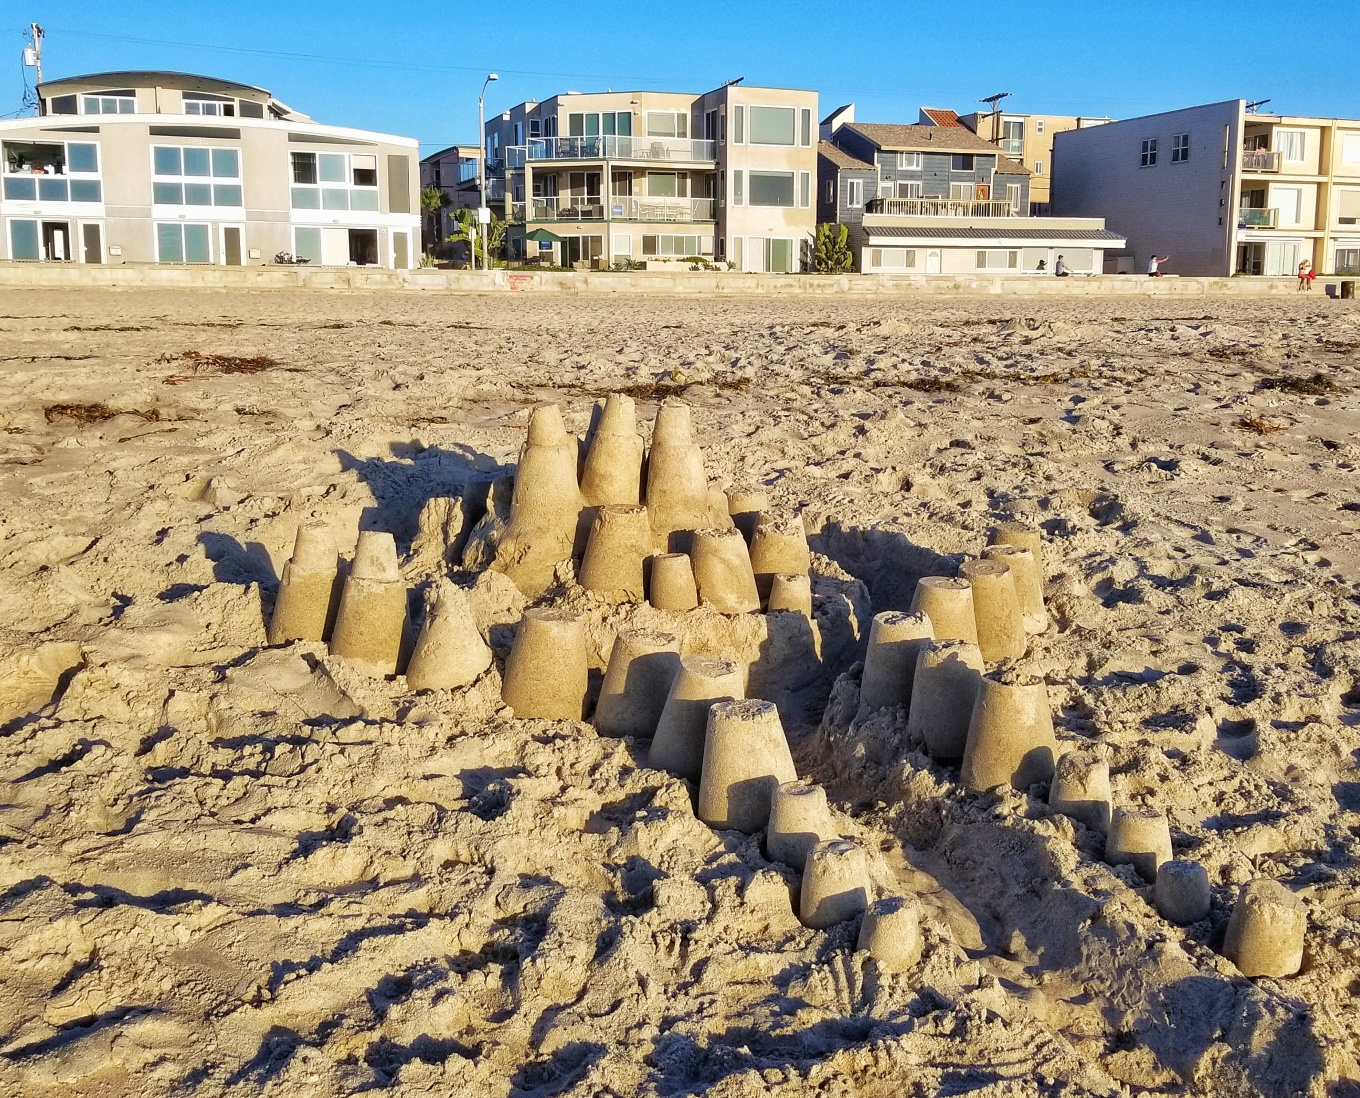 A shitty Sand Castle at Pacific Beach, San Diego, CA